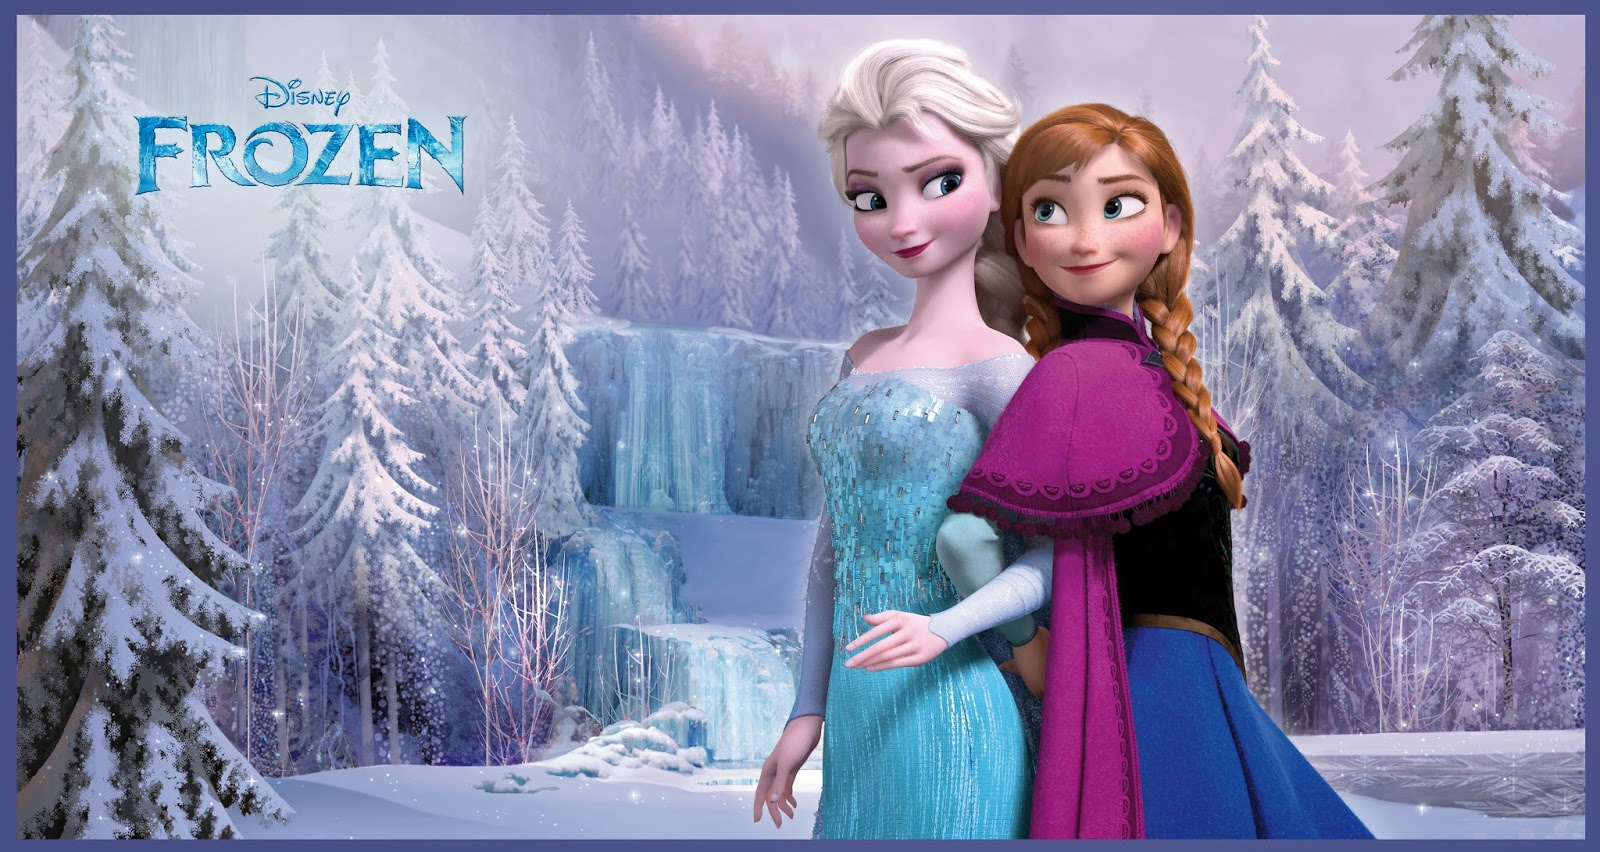 David gilson ma critique de la reine des neiges de disney - Rein des neig ...